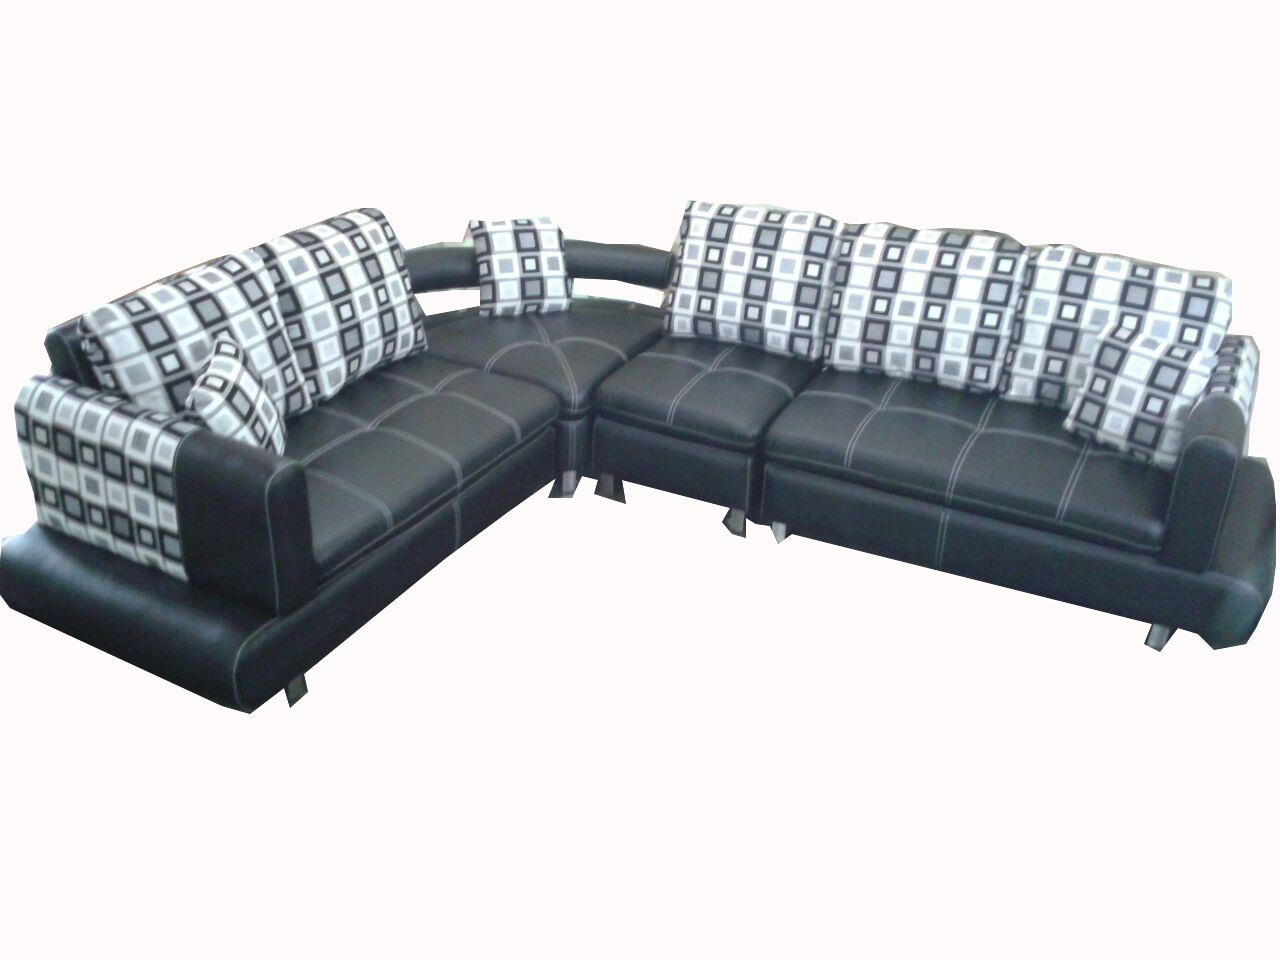 Sofa Repair Jakarta Sell Shape Sofa L From Indonesia By Toko Vision Furniture Cheap Price